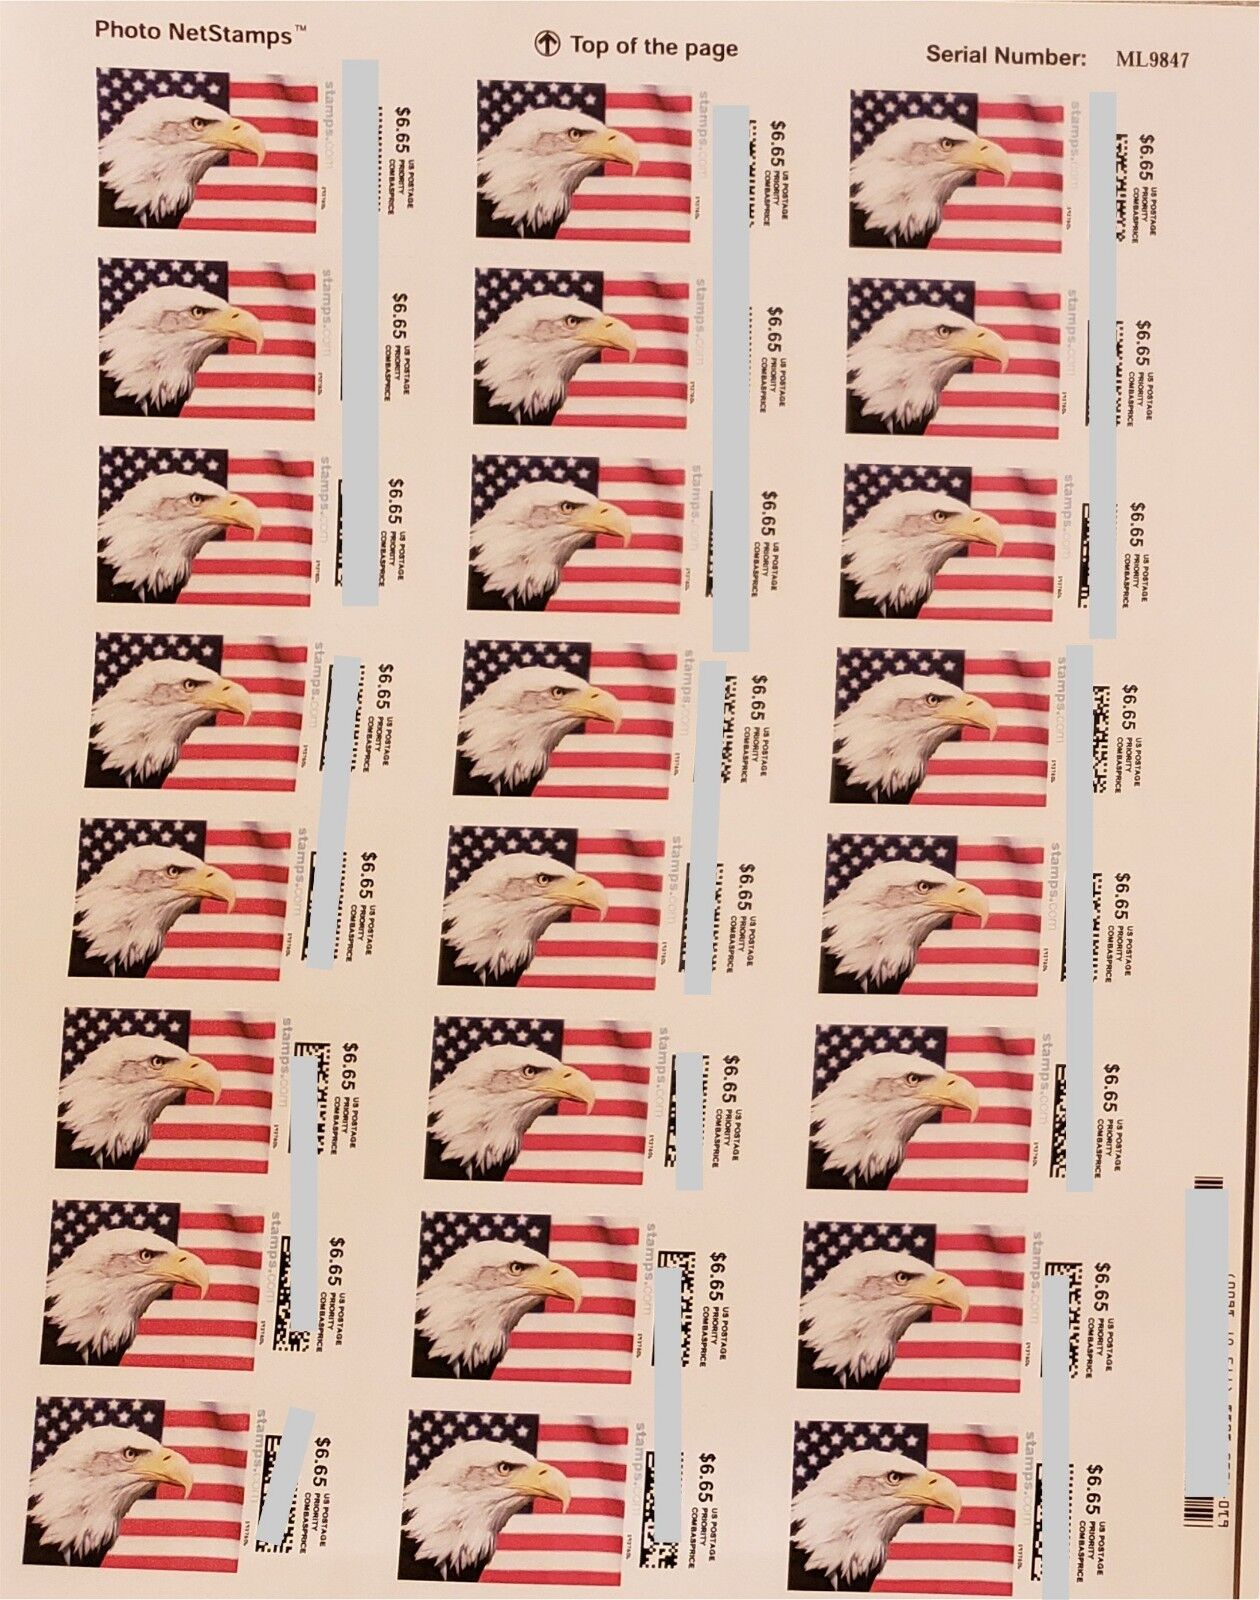 Купить USPS Postage $6.65 Stamps, one sheet face value $159.60, one sheet has 24 pieces